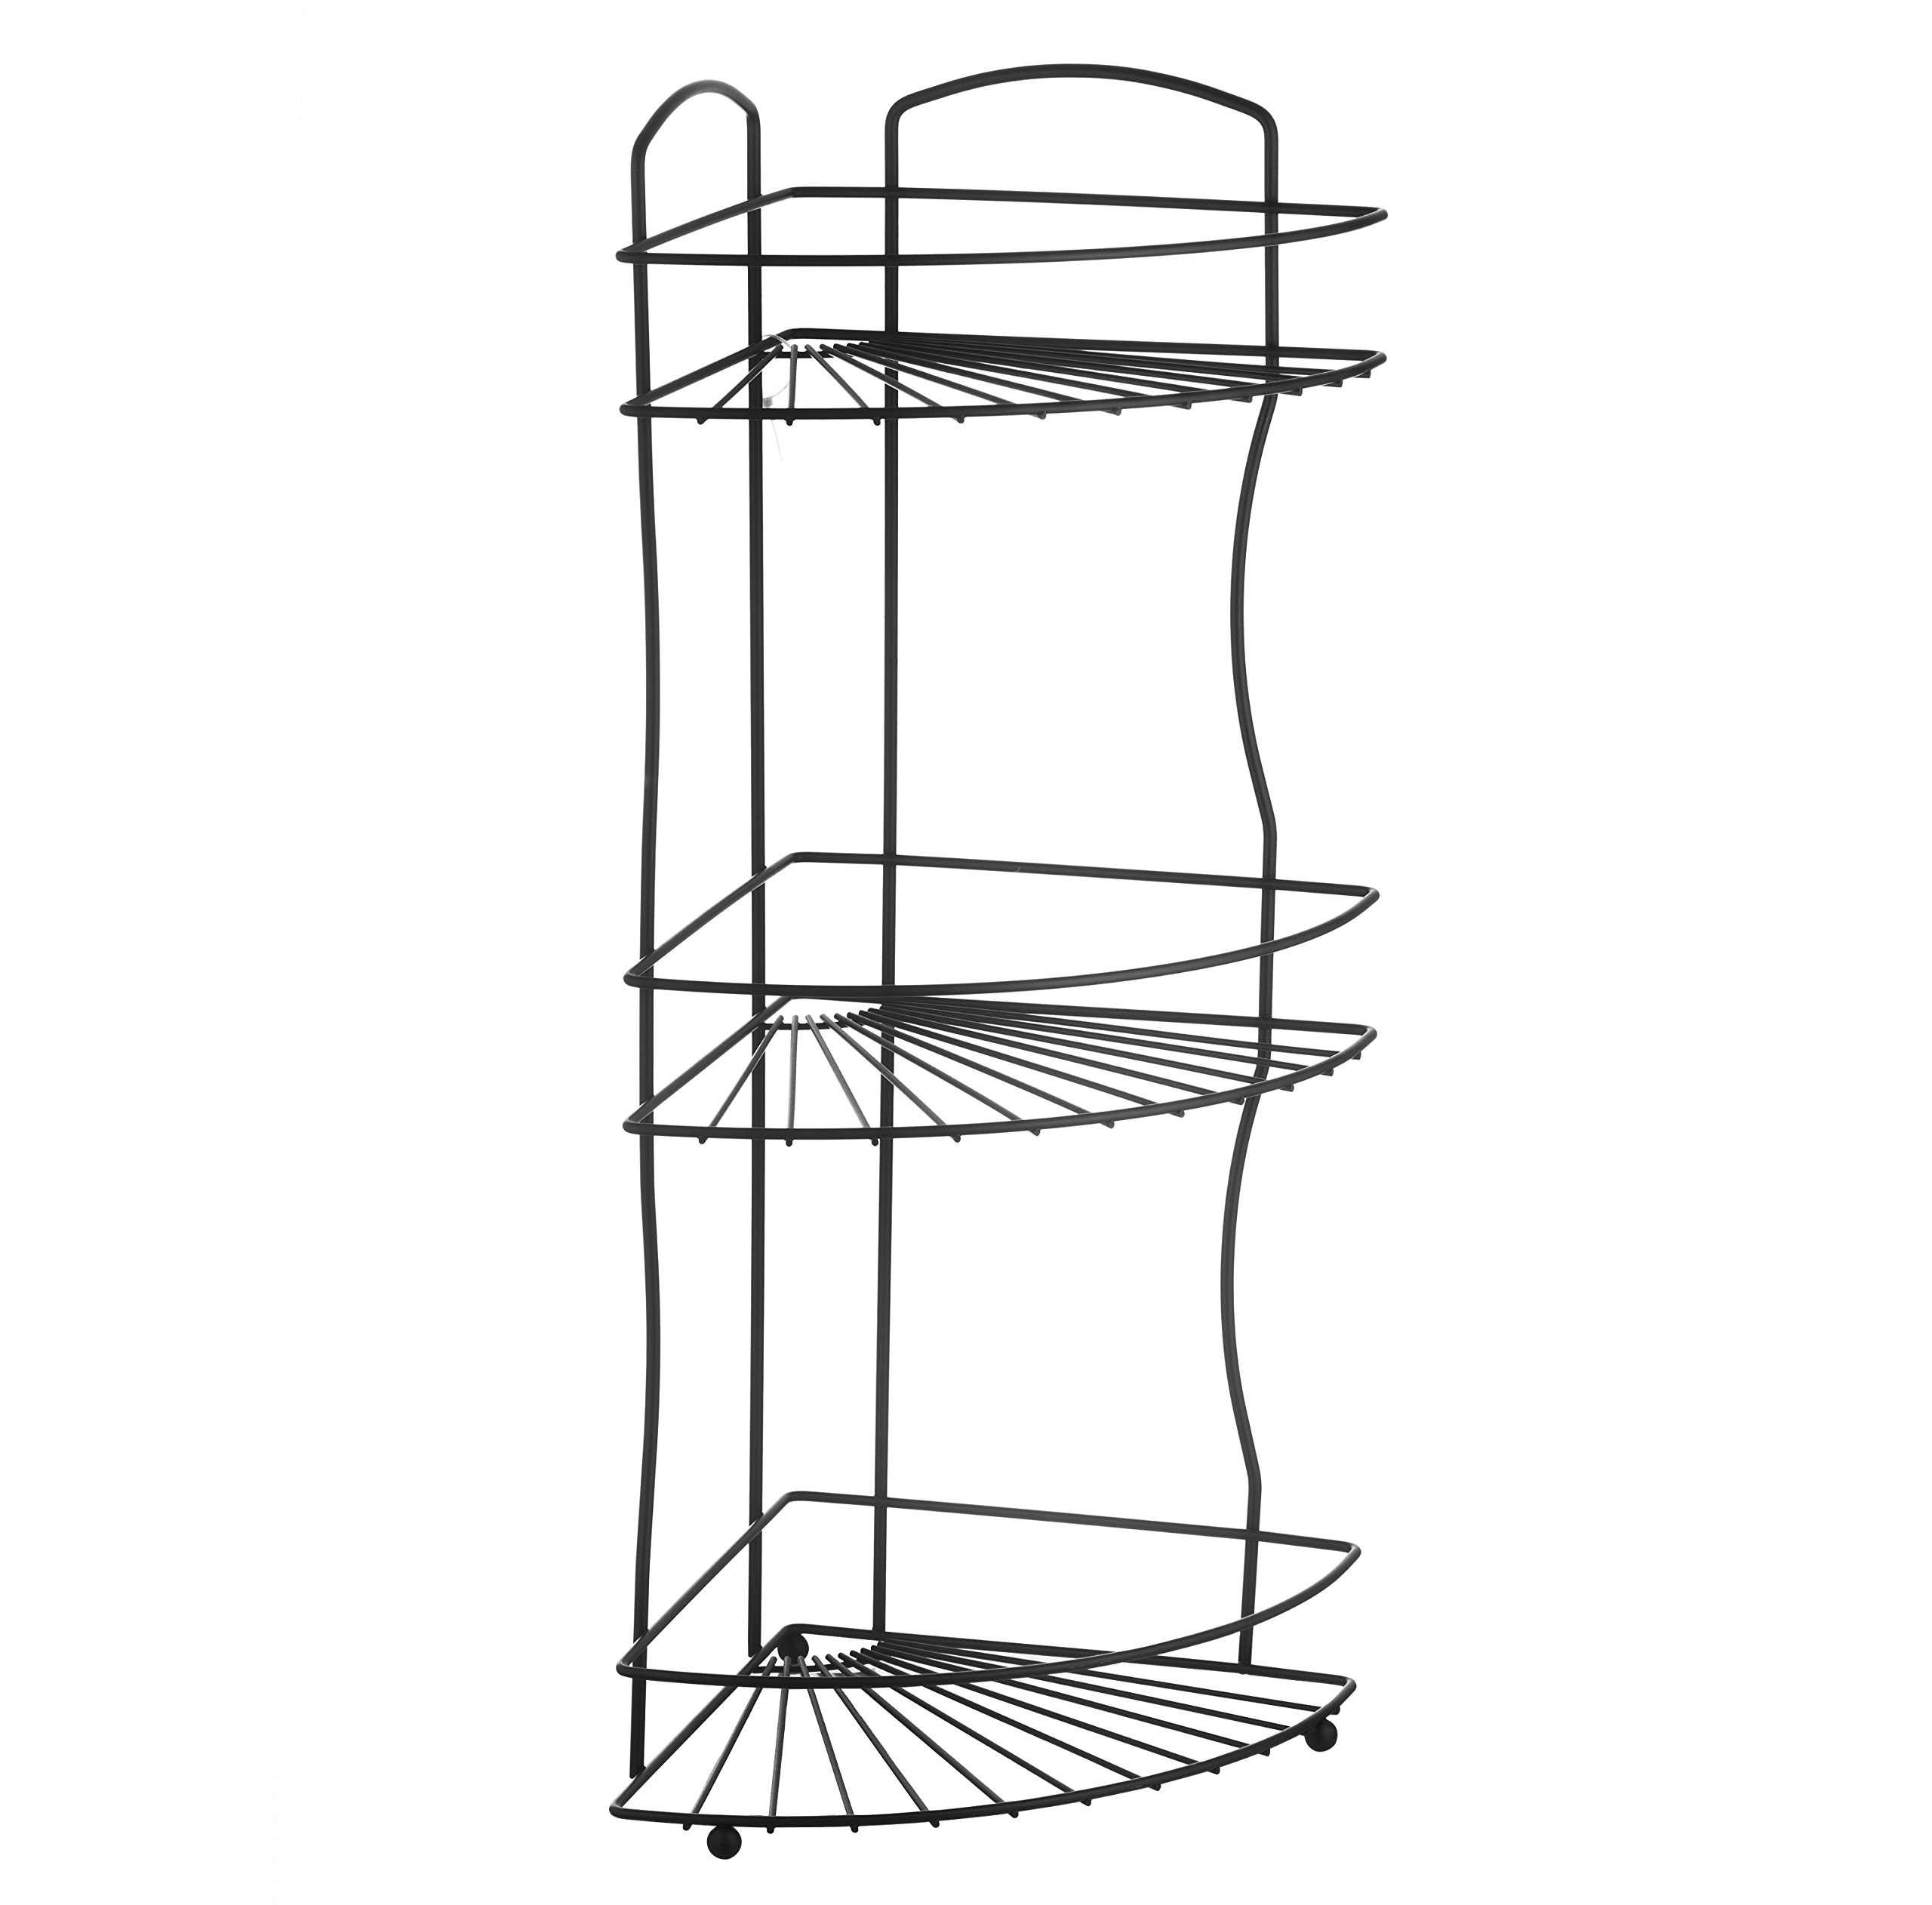 AMG and Enchante Accessories Free Standing Bathroom Spa Tower Floor Caddy, FC232-A BKN, Black Nickel by AMG (Image #6)